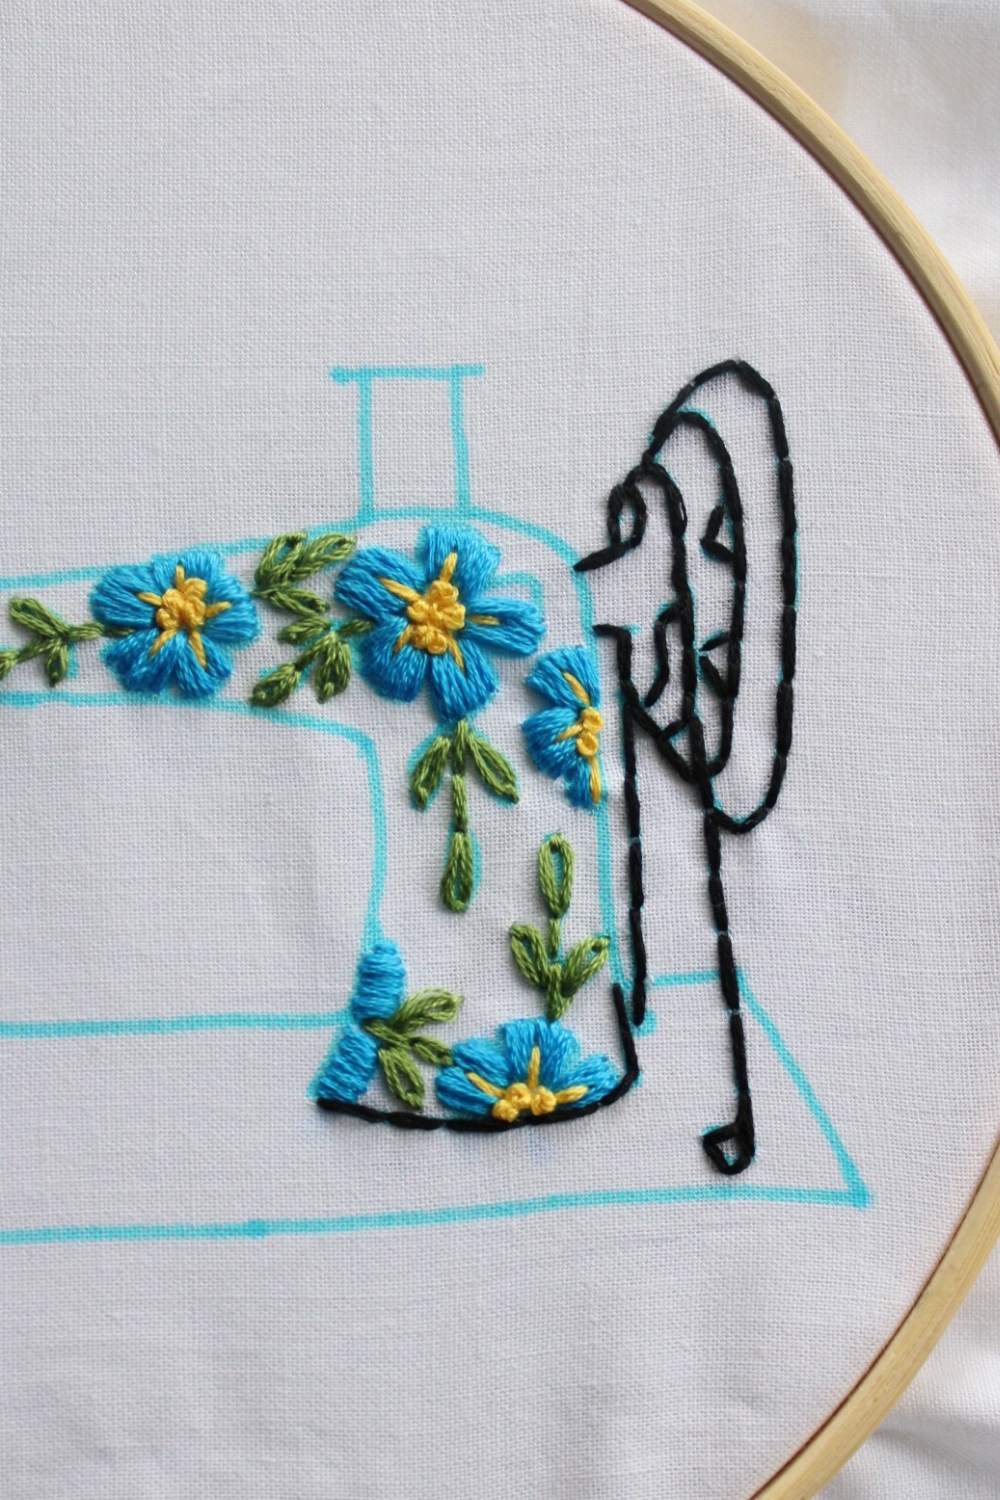 free embroidery pattern with instructions - how to embroider the sewing machine